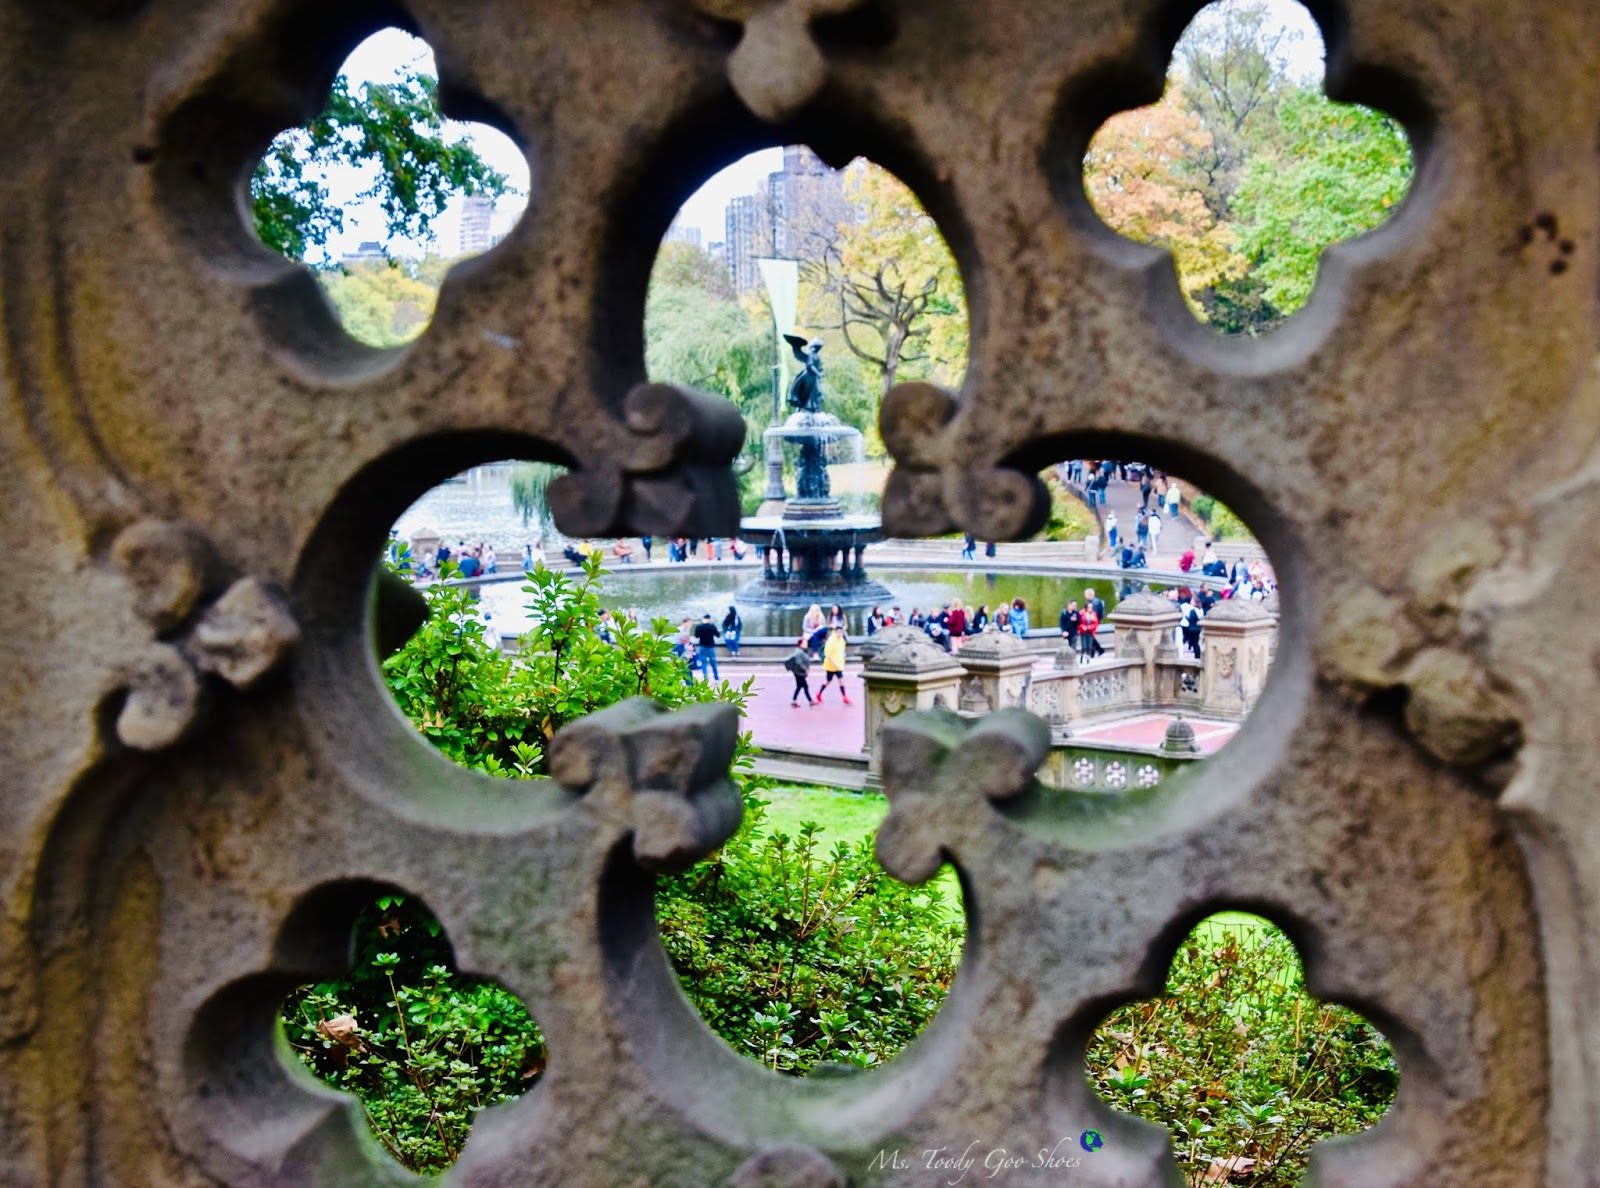 Bethesda Fountain in Central Park, NYC | Ms. Toody Goo Shoes